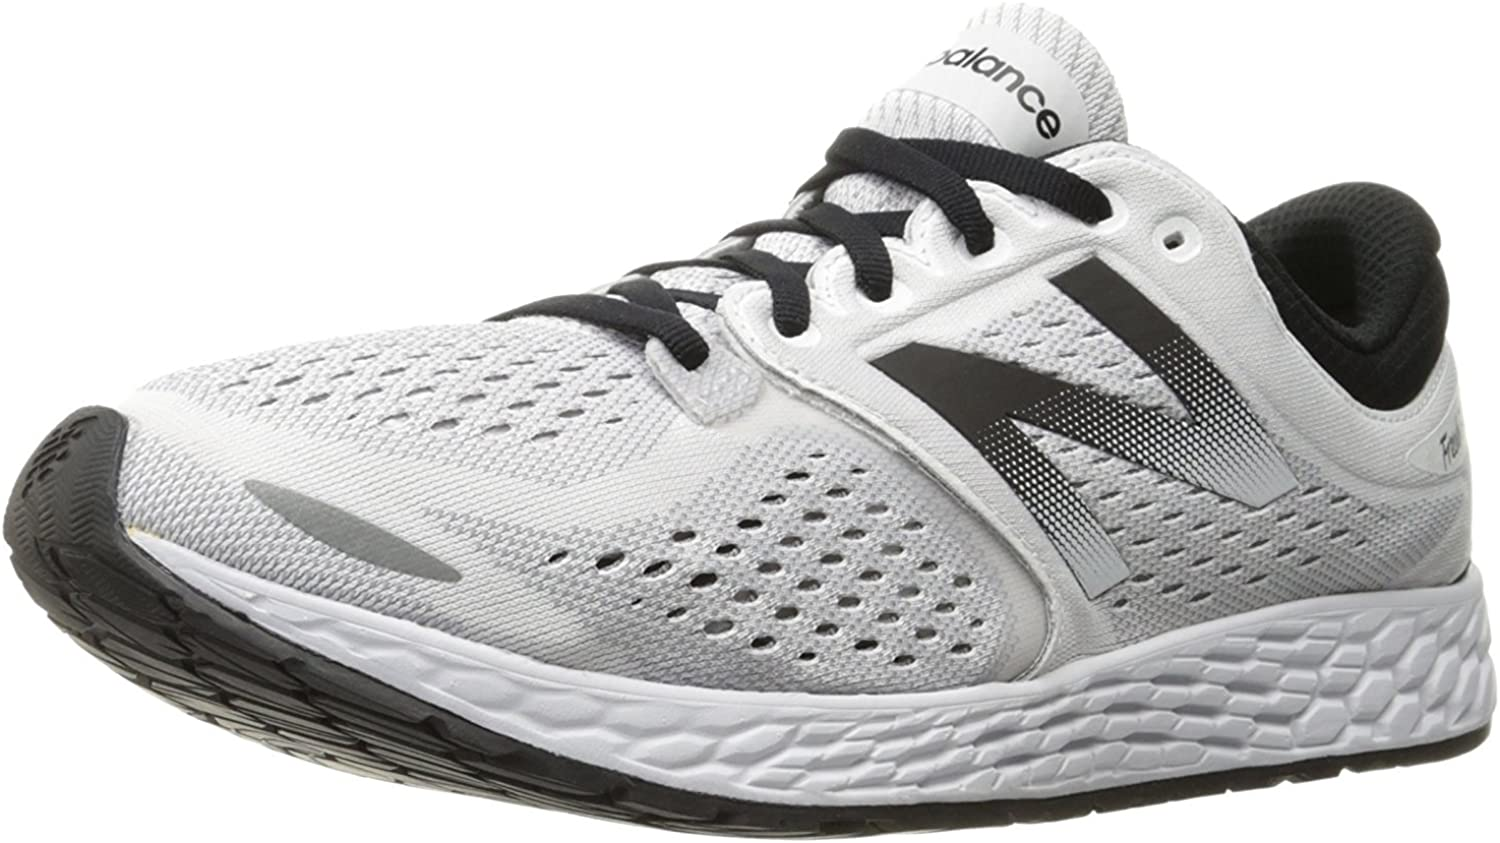 New Balance Fresh Foam Zante v3, Zapatillas de Running Hombre: Amazon.es: Zapatos y complementos